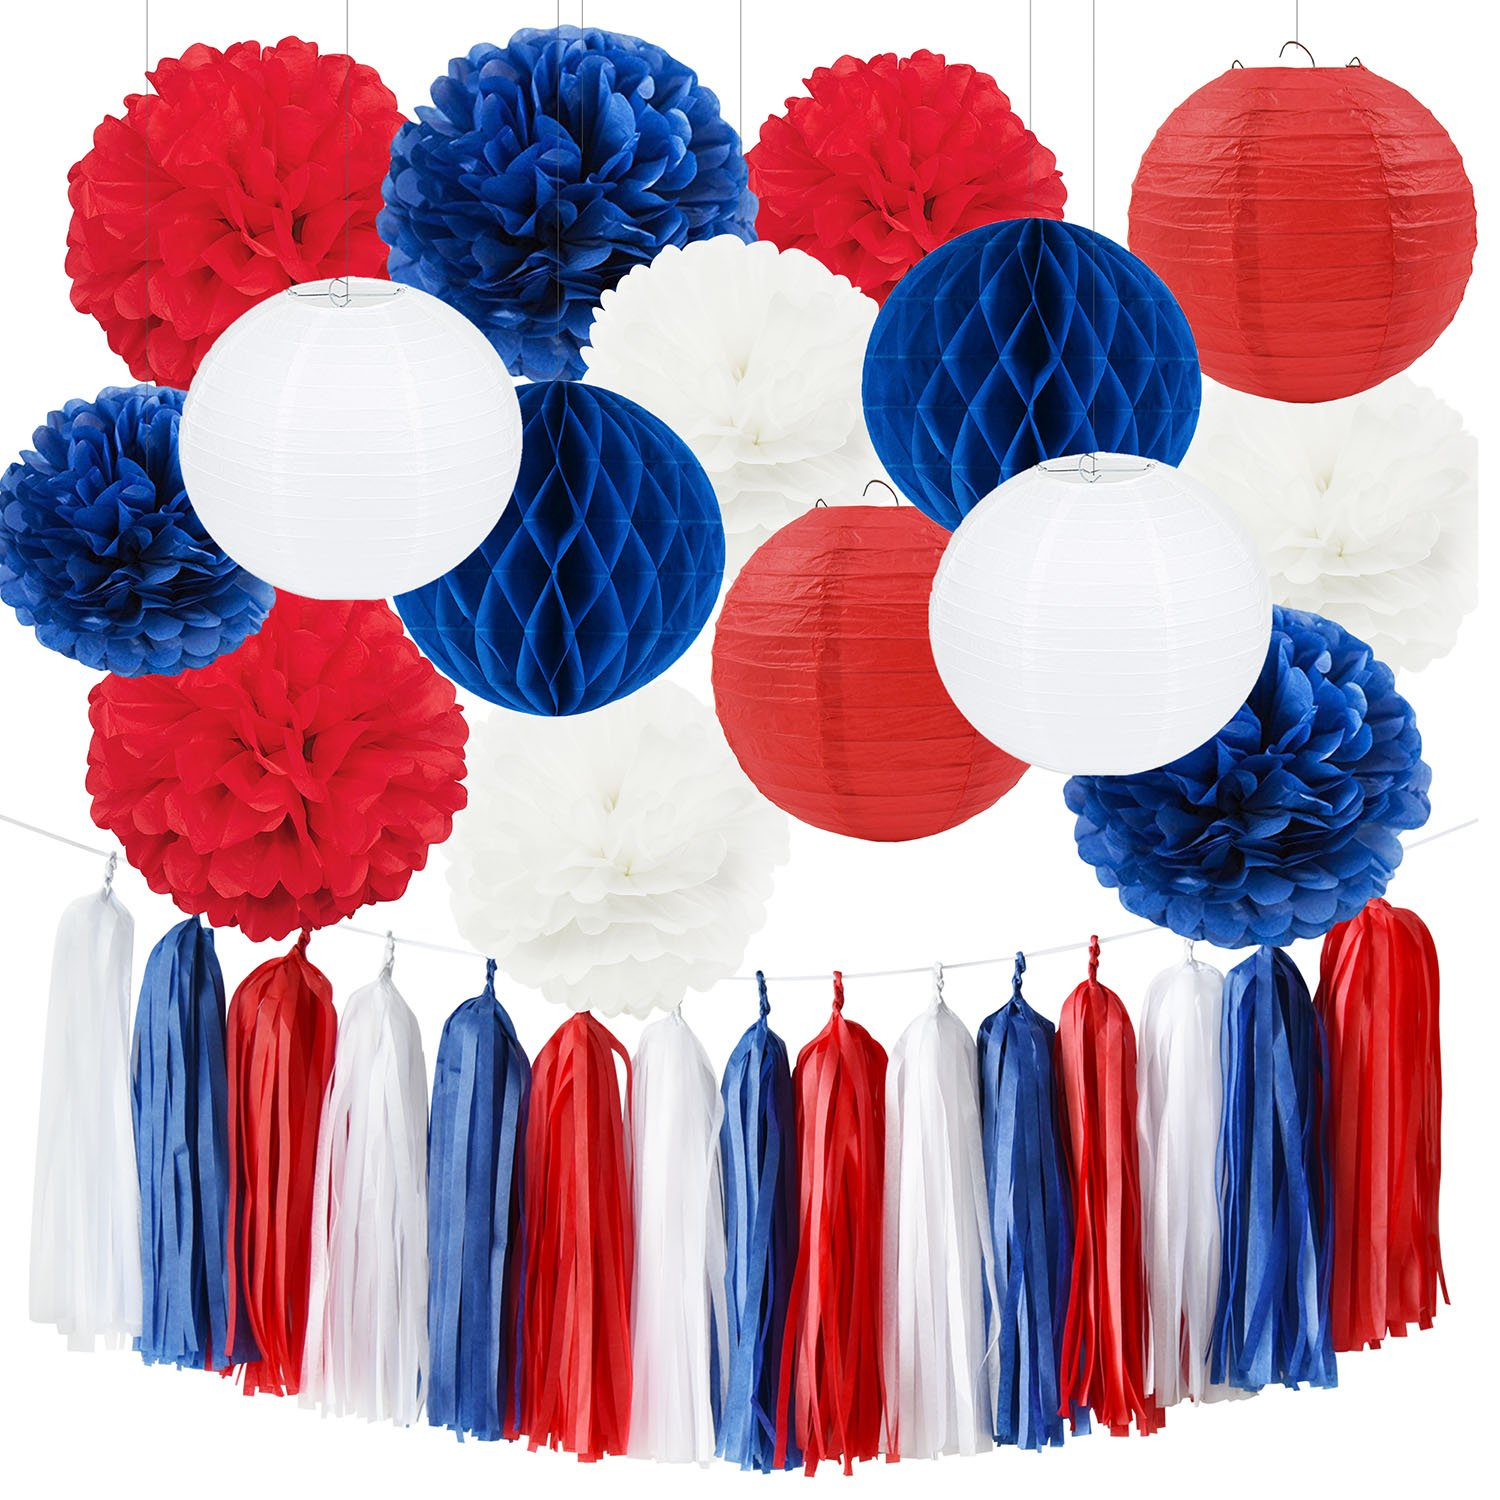 Navy Blue Mixed Red White 4th of July Decorations Patriotic Party Decorations Tissue Pom Pom Paper Lanterns Tassel Garland Fourth of July Party Favors Baby Shower Birthday Sail Boats Party Decorations by Furuix (Image #1)